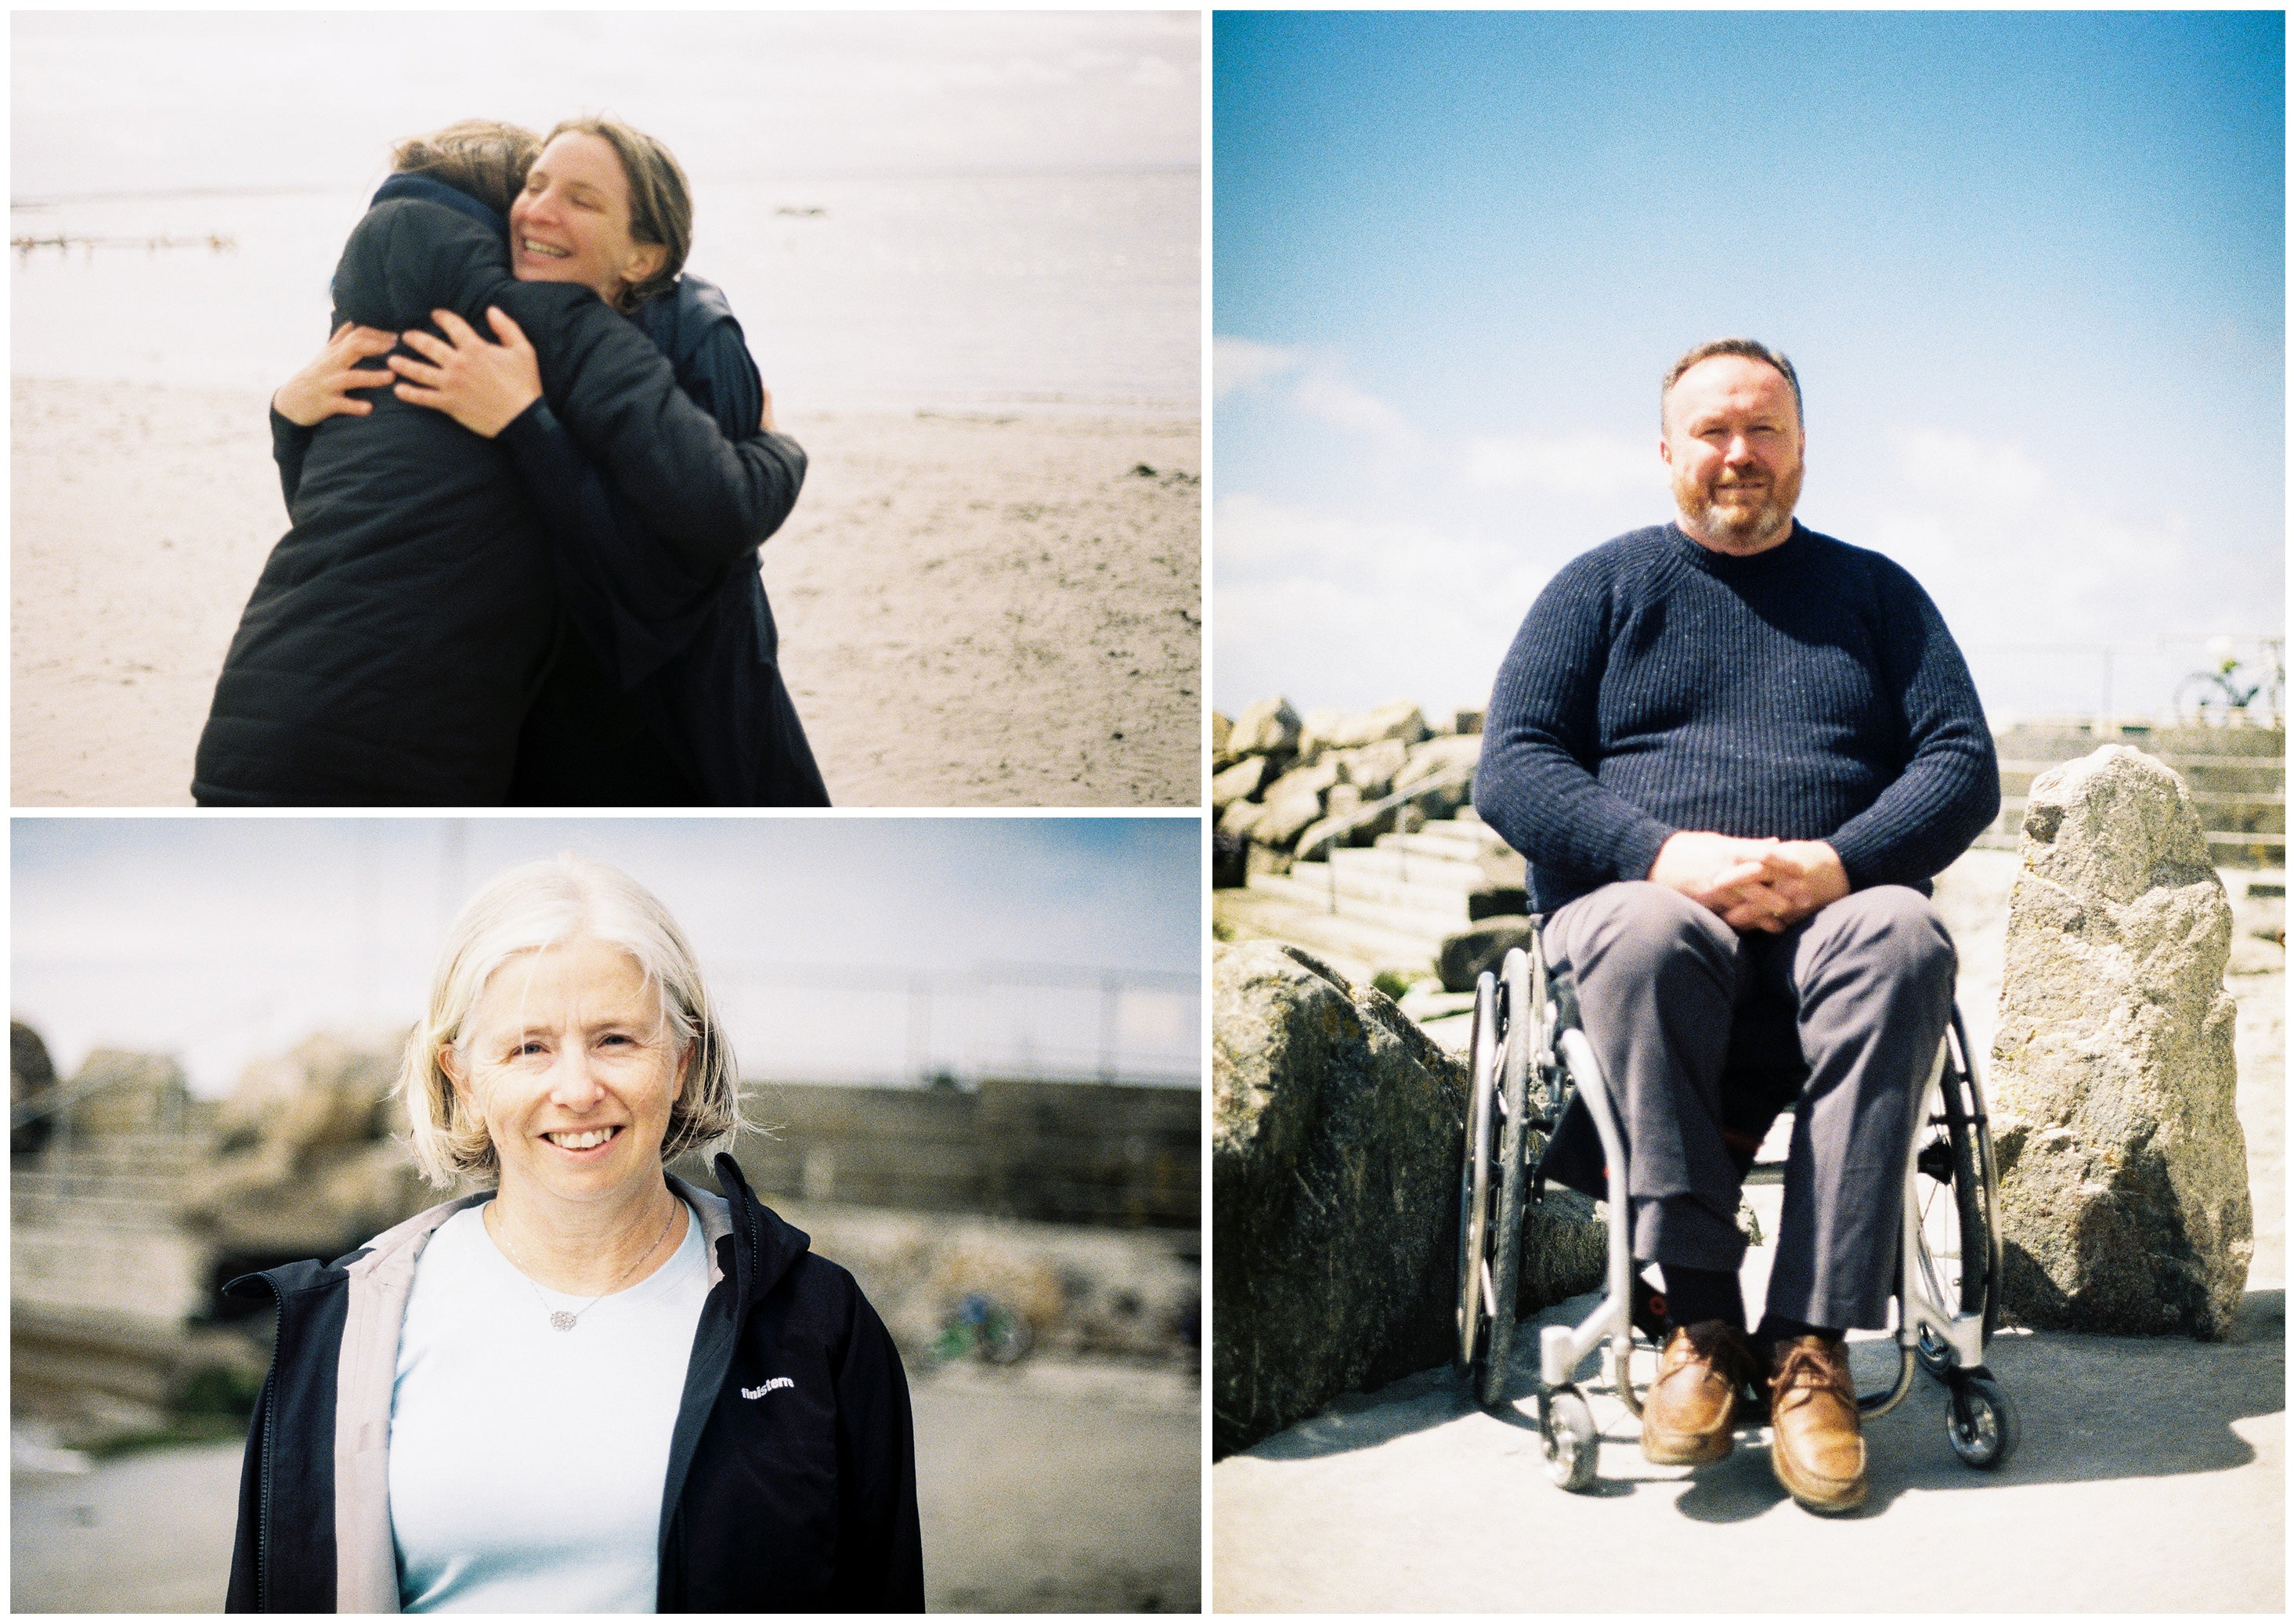 Top left image showing two women hugging, Bottom left with woman smiling at camera on the beach, Right image shows man sat in wheelchair in front of beach wall